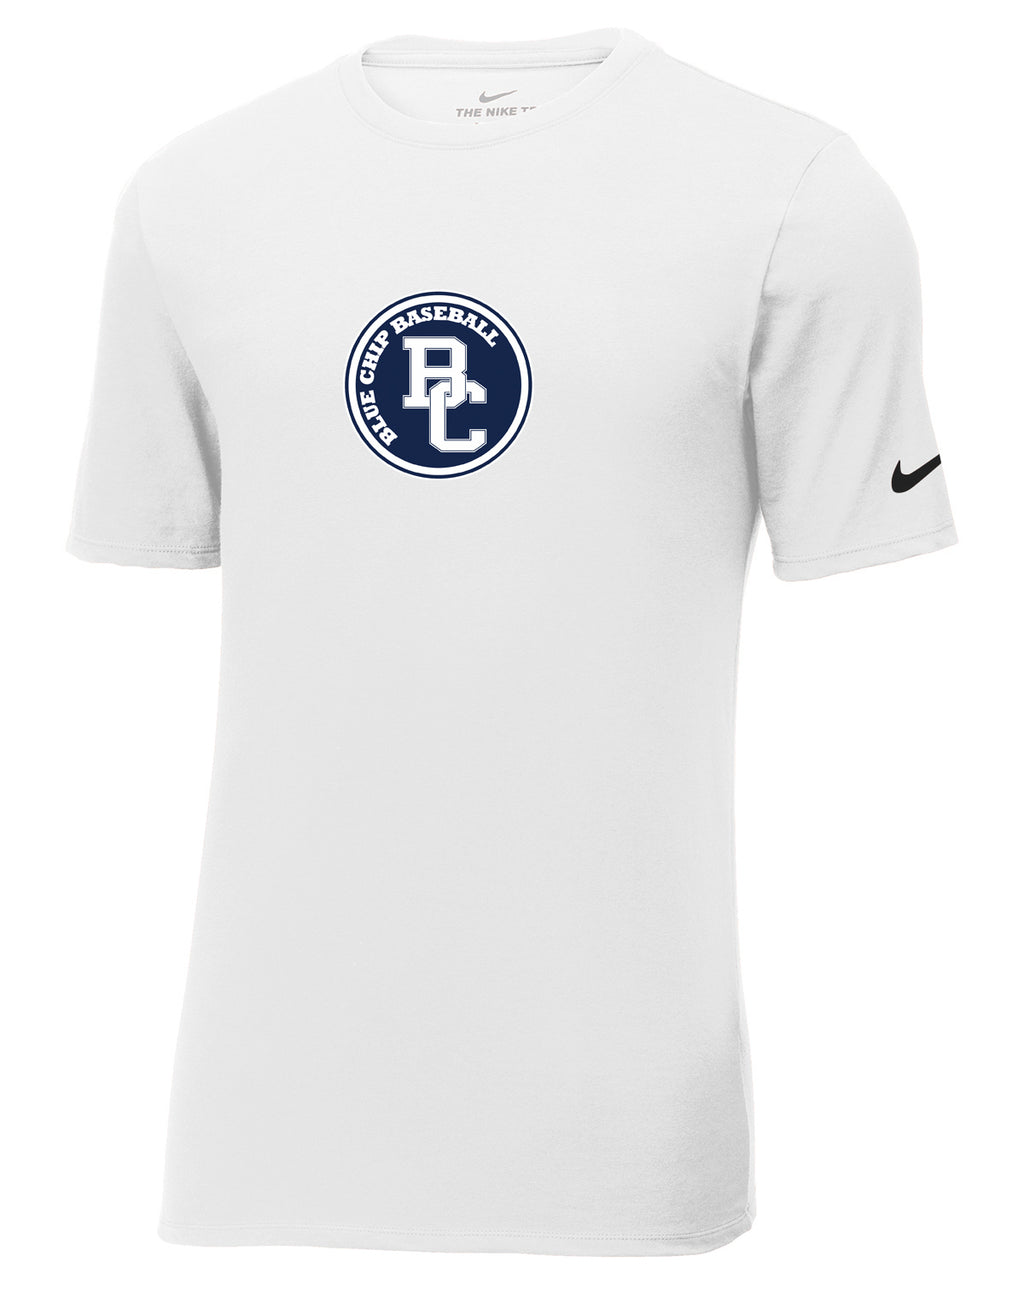 BlueChip Baseball Nike Core Cotton Tee